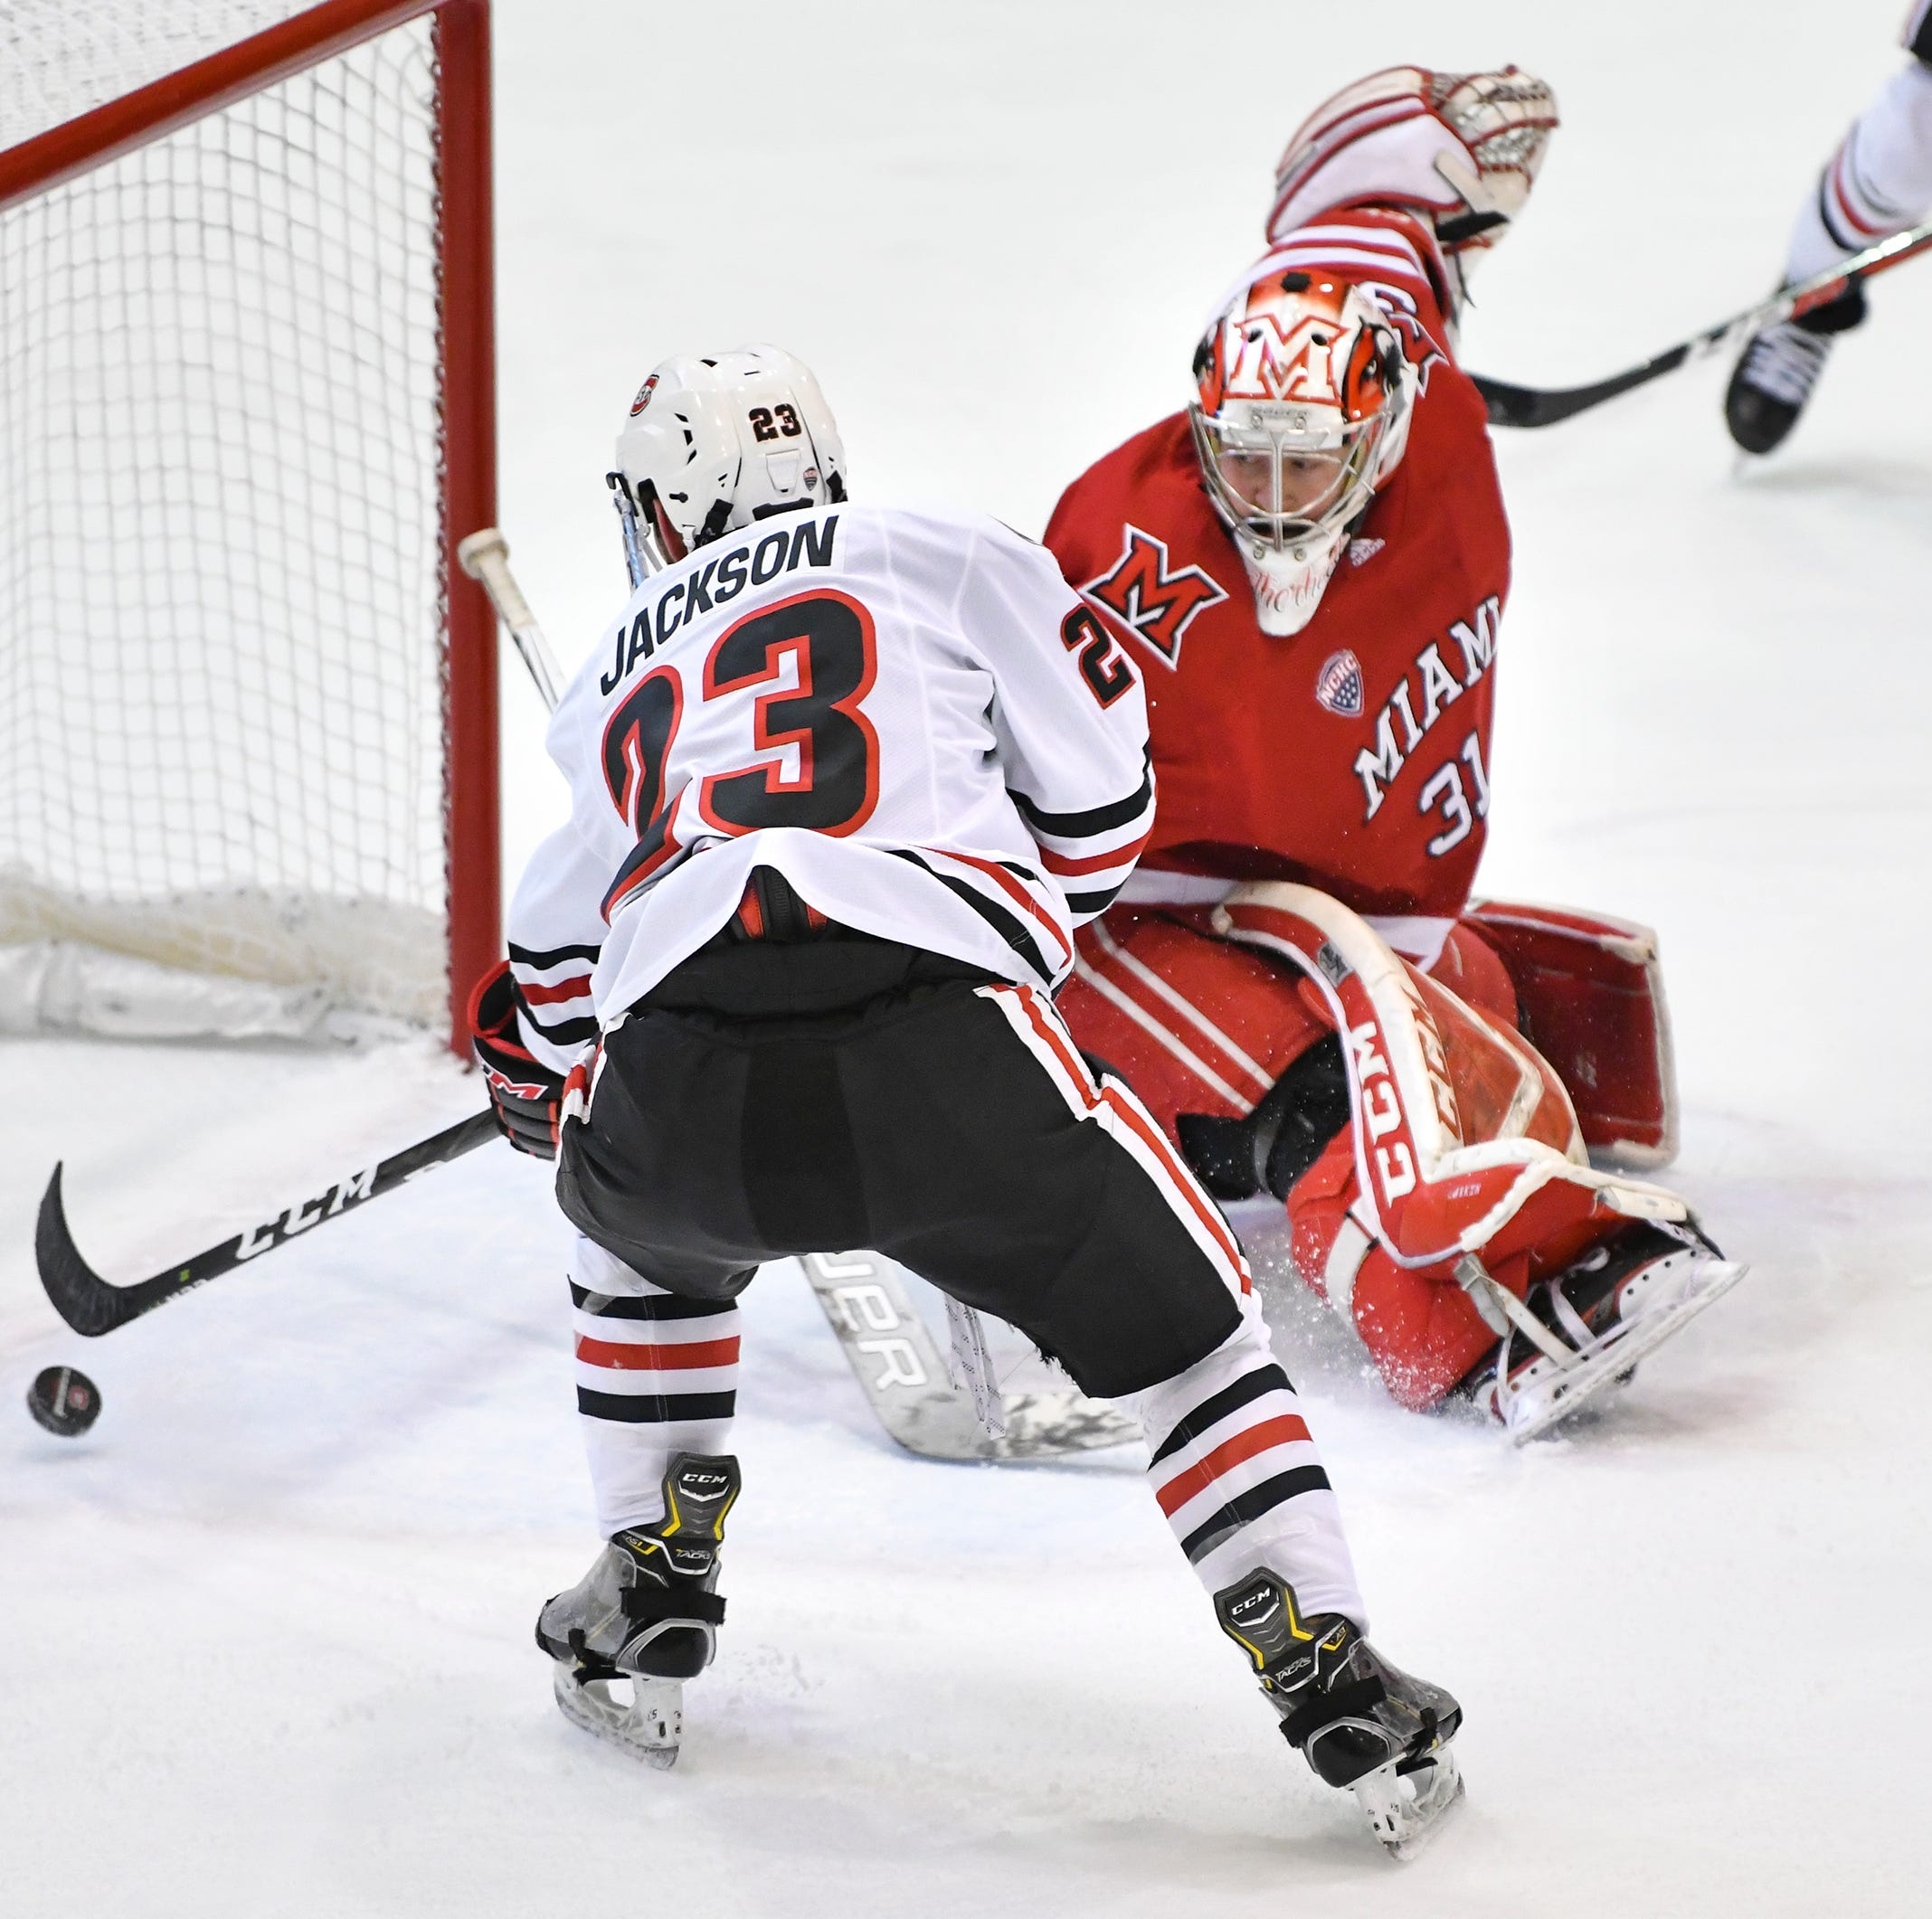 St. Cloud State downs Miami in game one